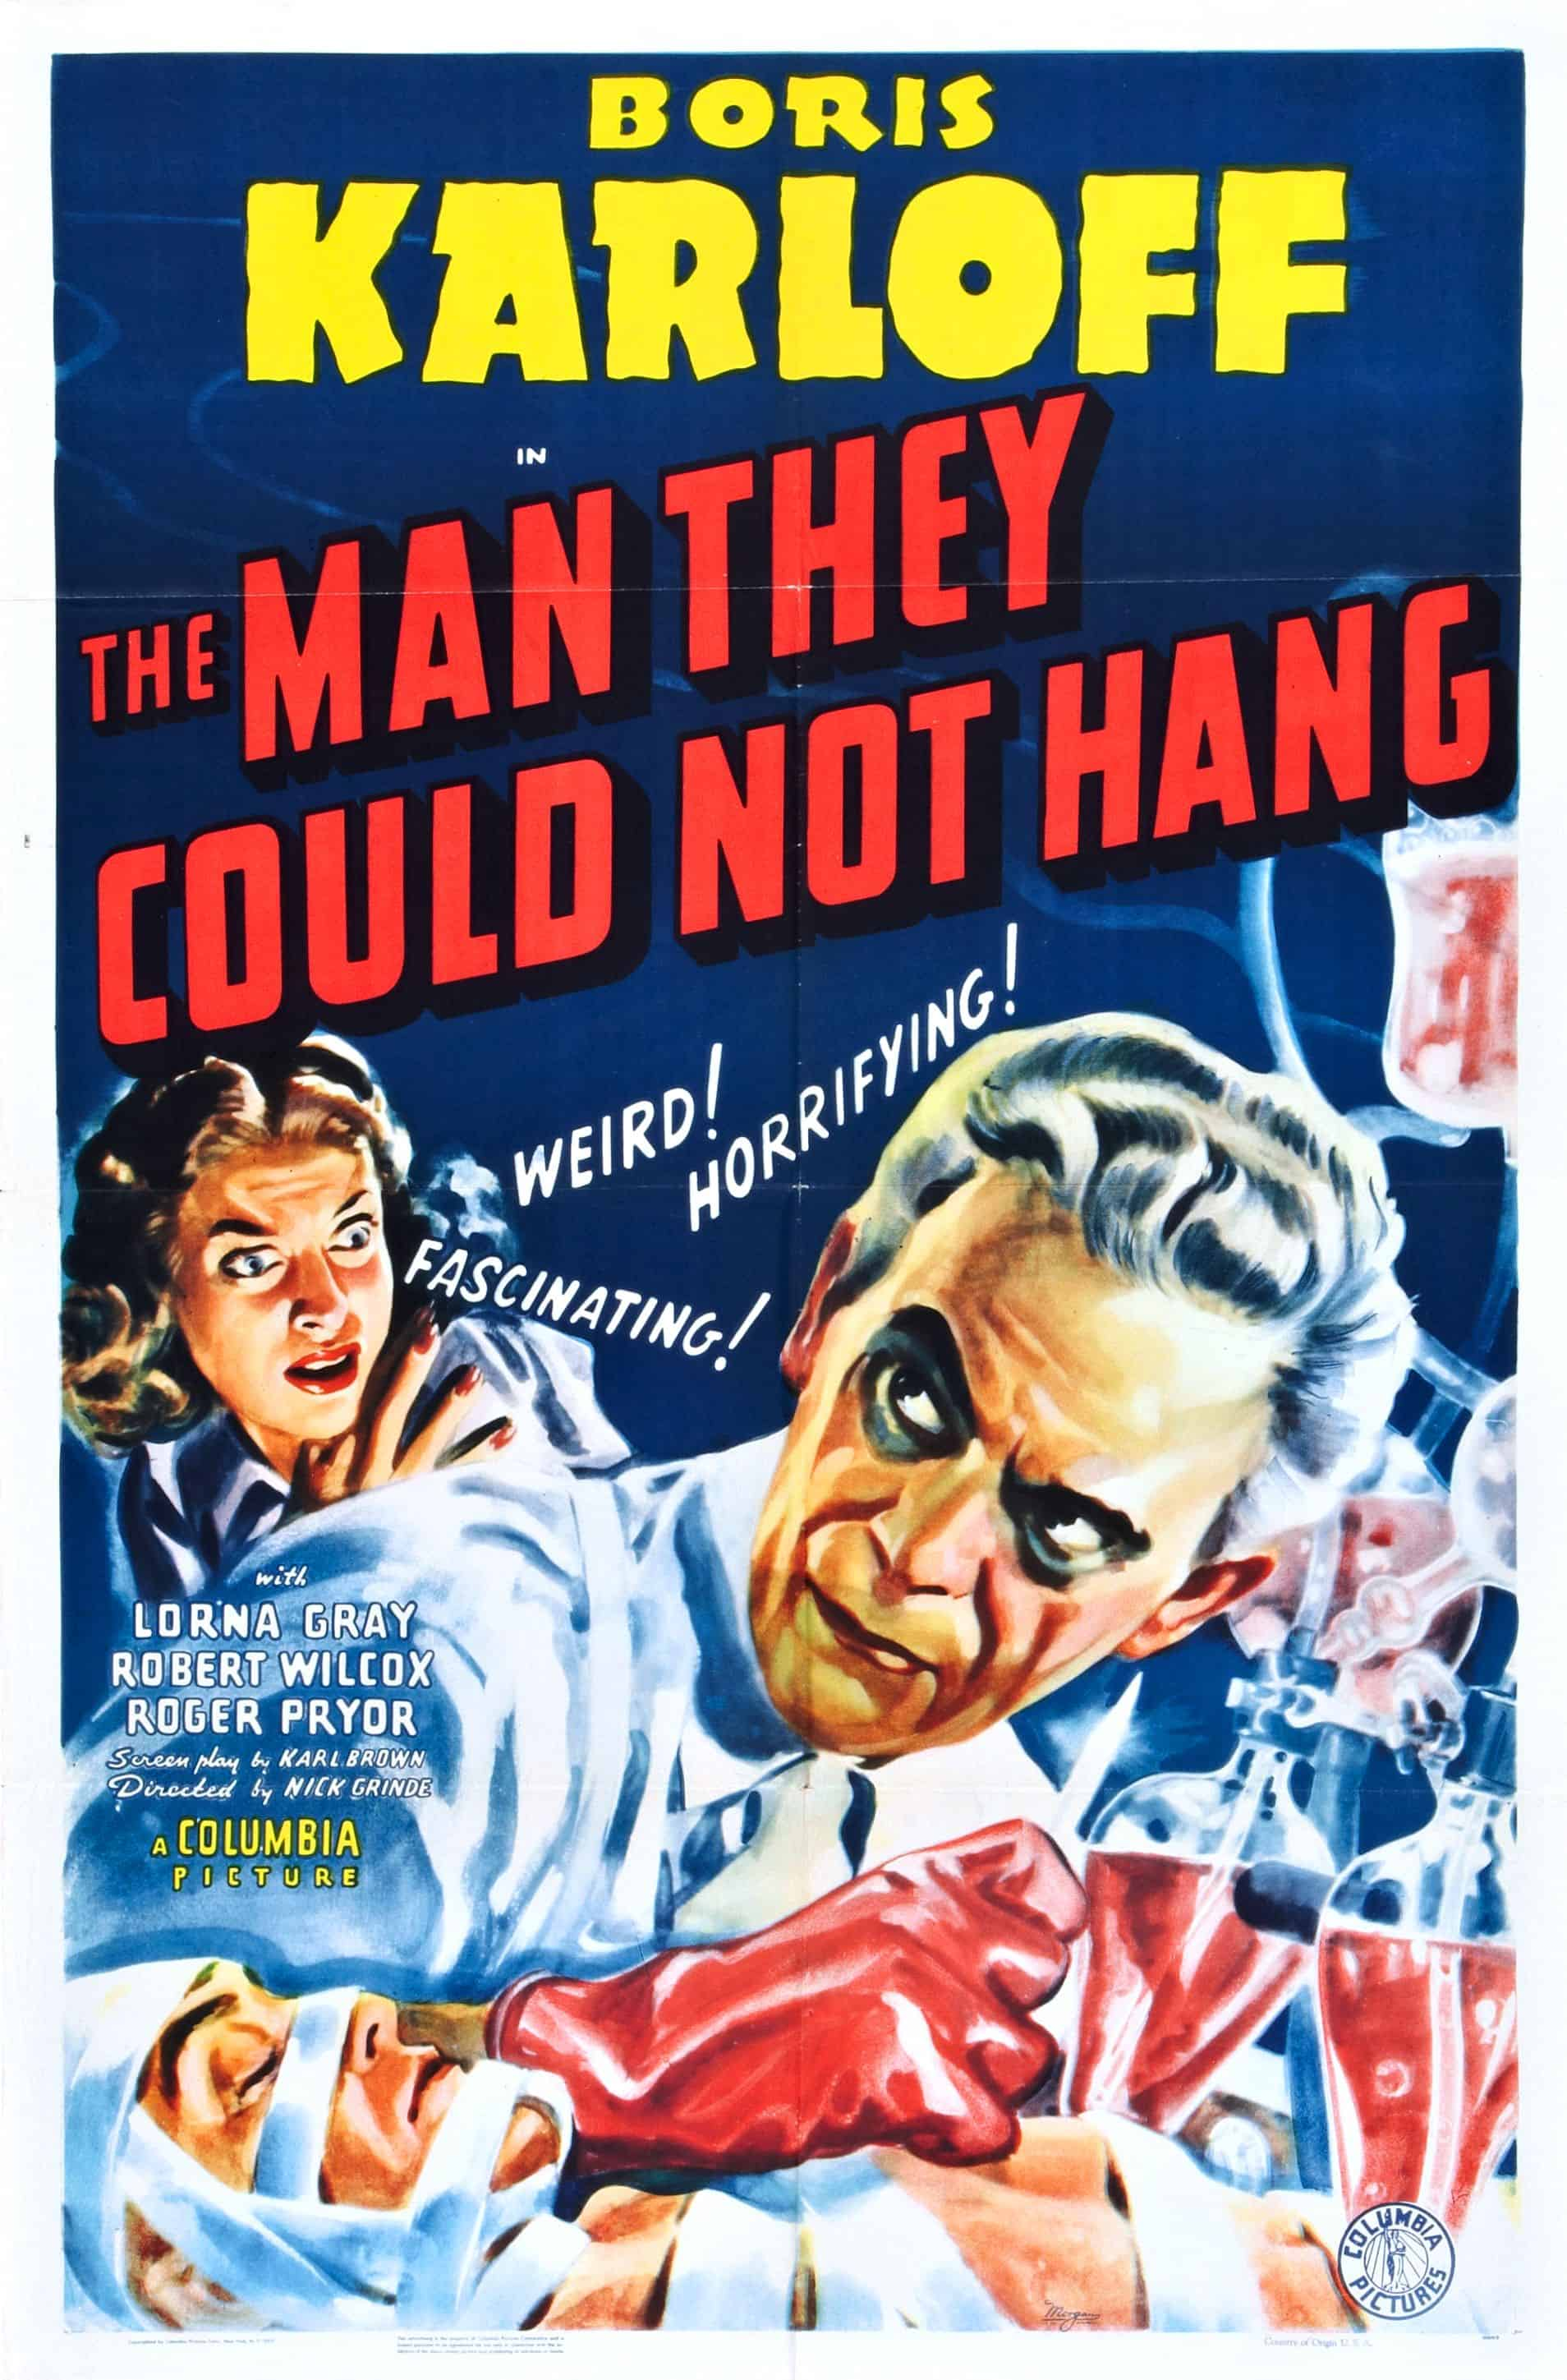 Movie Posters We Love: The Man They Could Not Hang (1939)